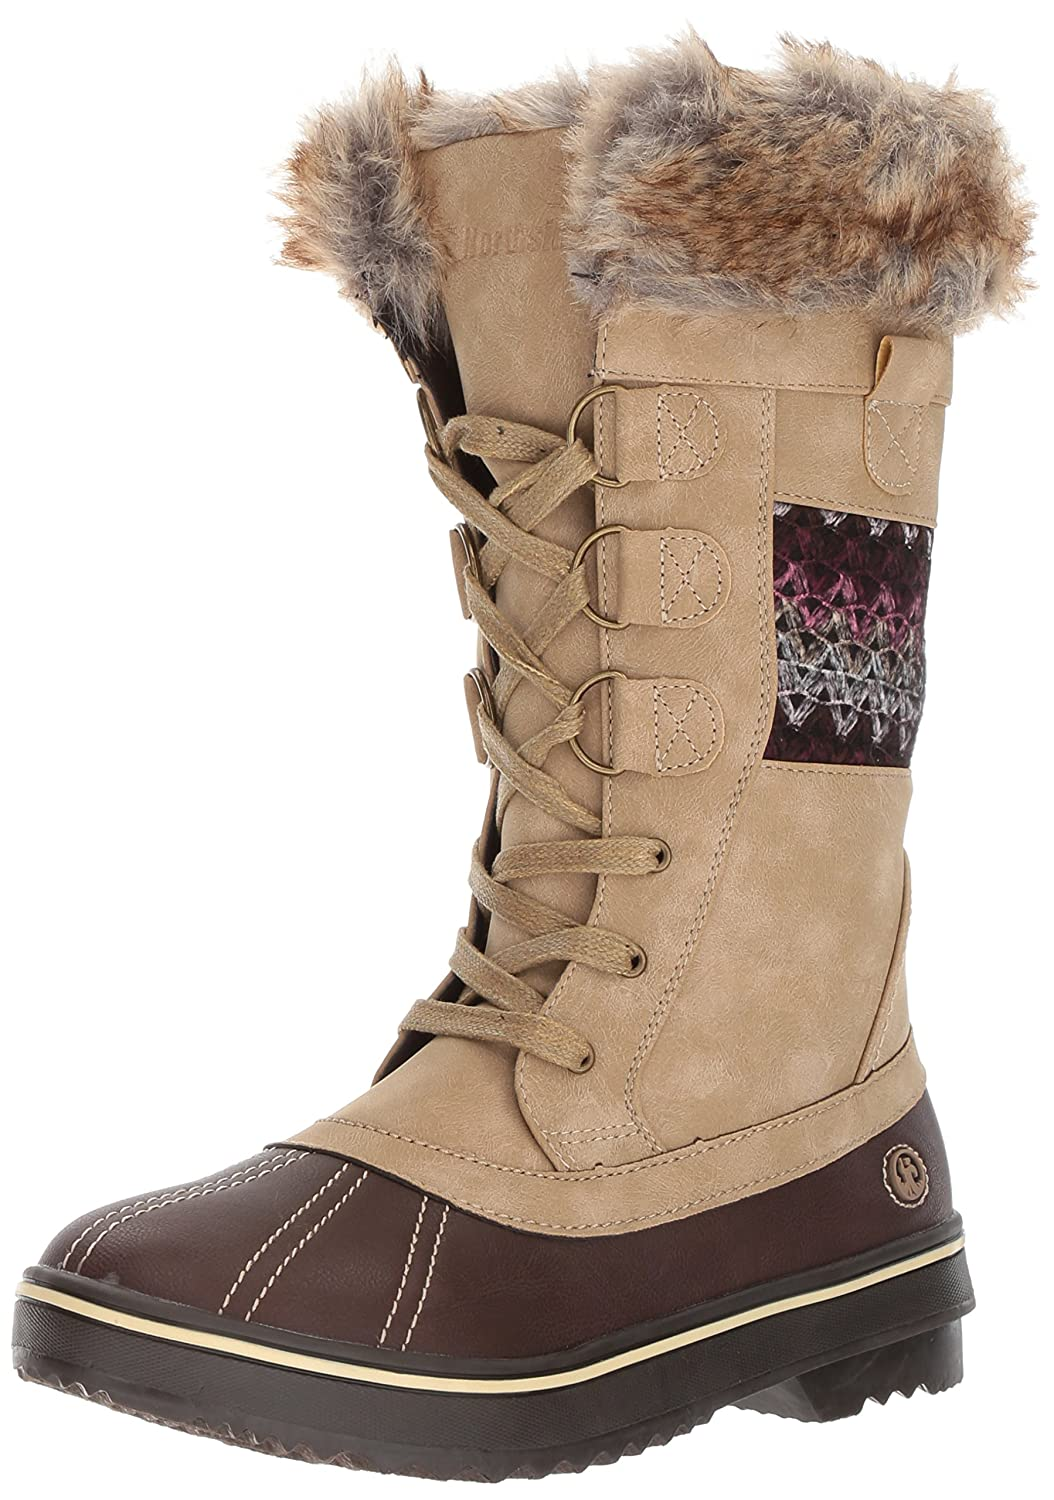 Northside Women's Bishop Snow Boot B01MUFTUF0 8 B(M) US|Tan/Berry